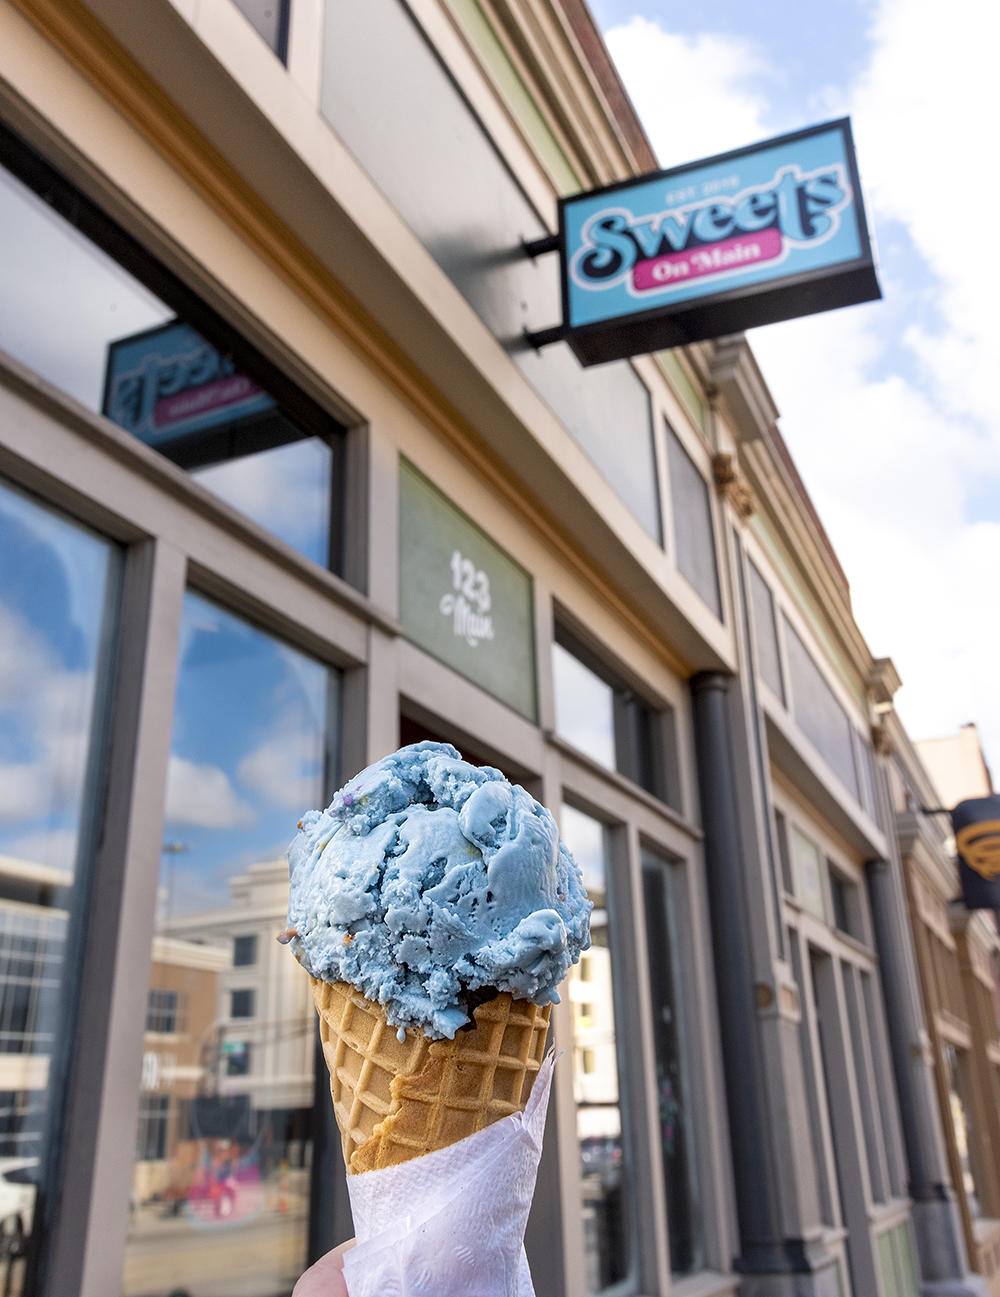 Birthday cake flavored ice cream in a waffle cone at Sweets on Main in downtown Fort Wayne